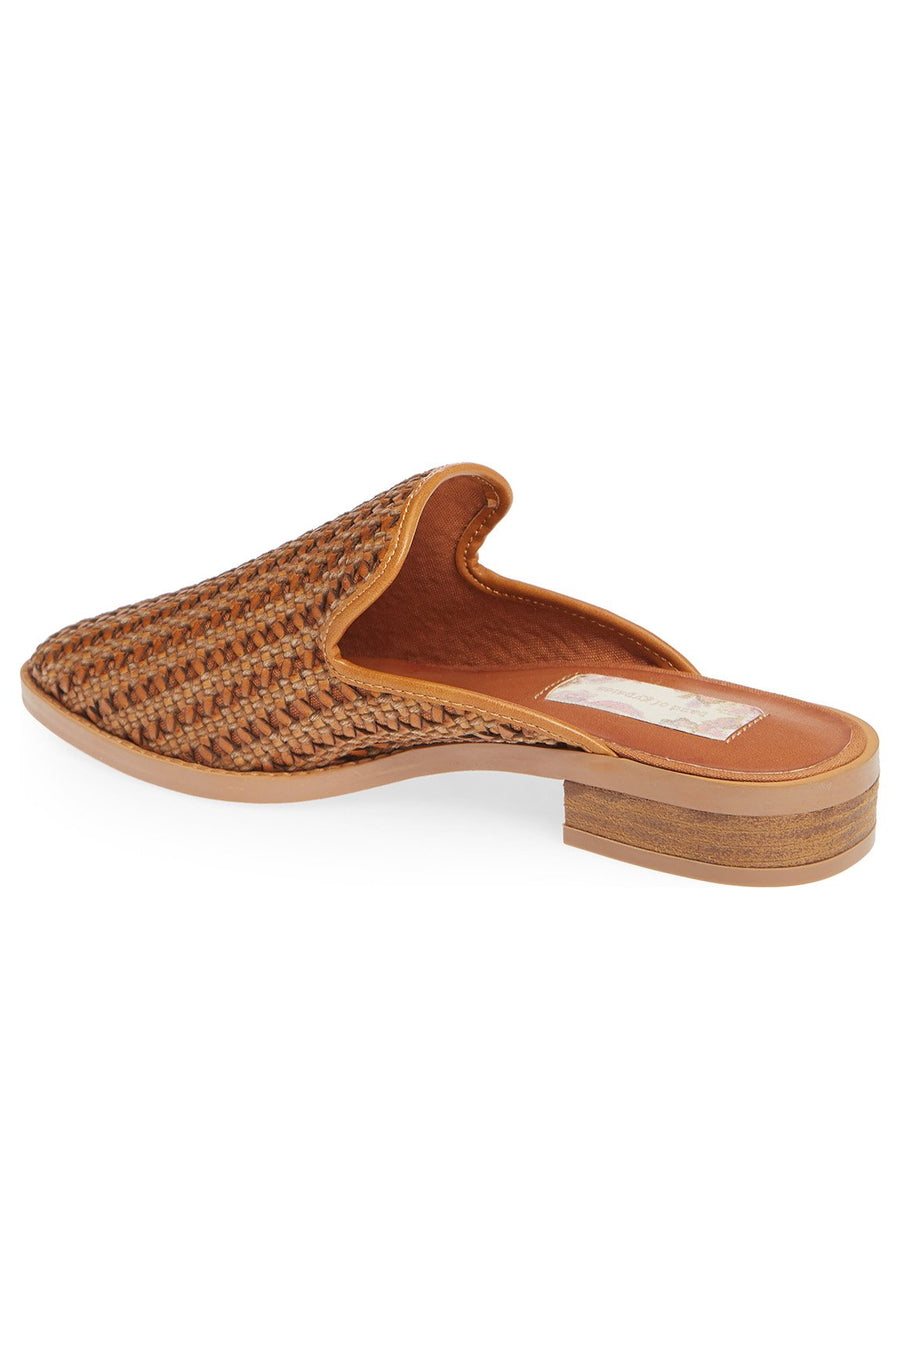 Skipper Cognac Woven Vegan Leather Loafer Mule Master